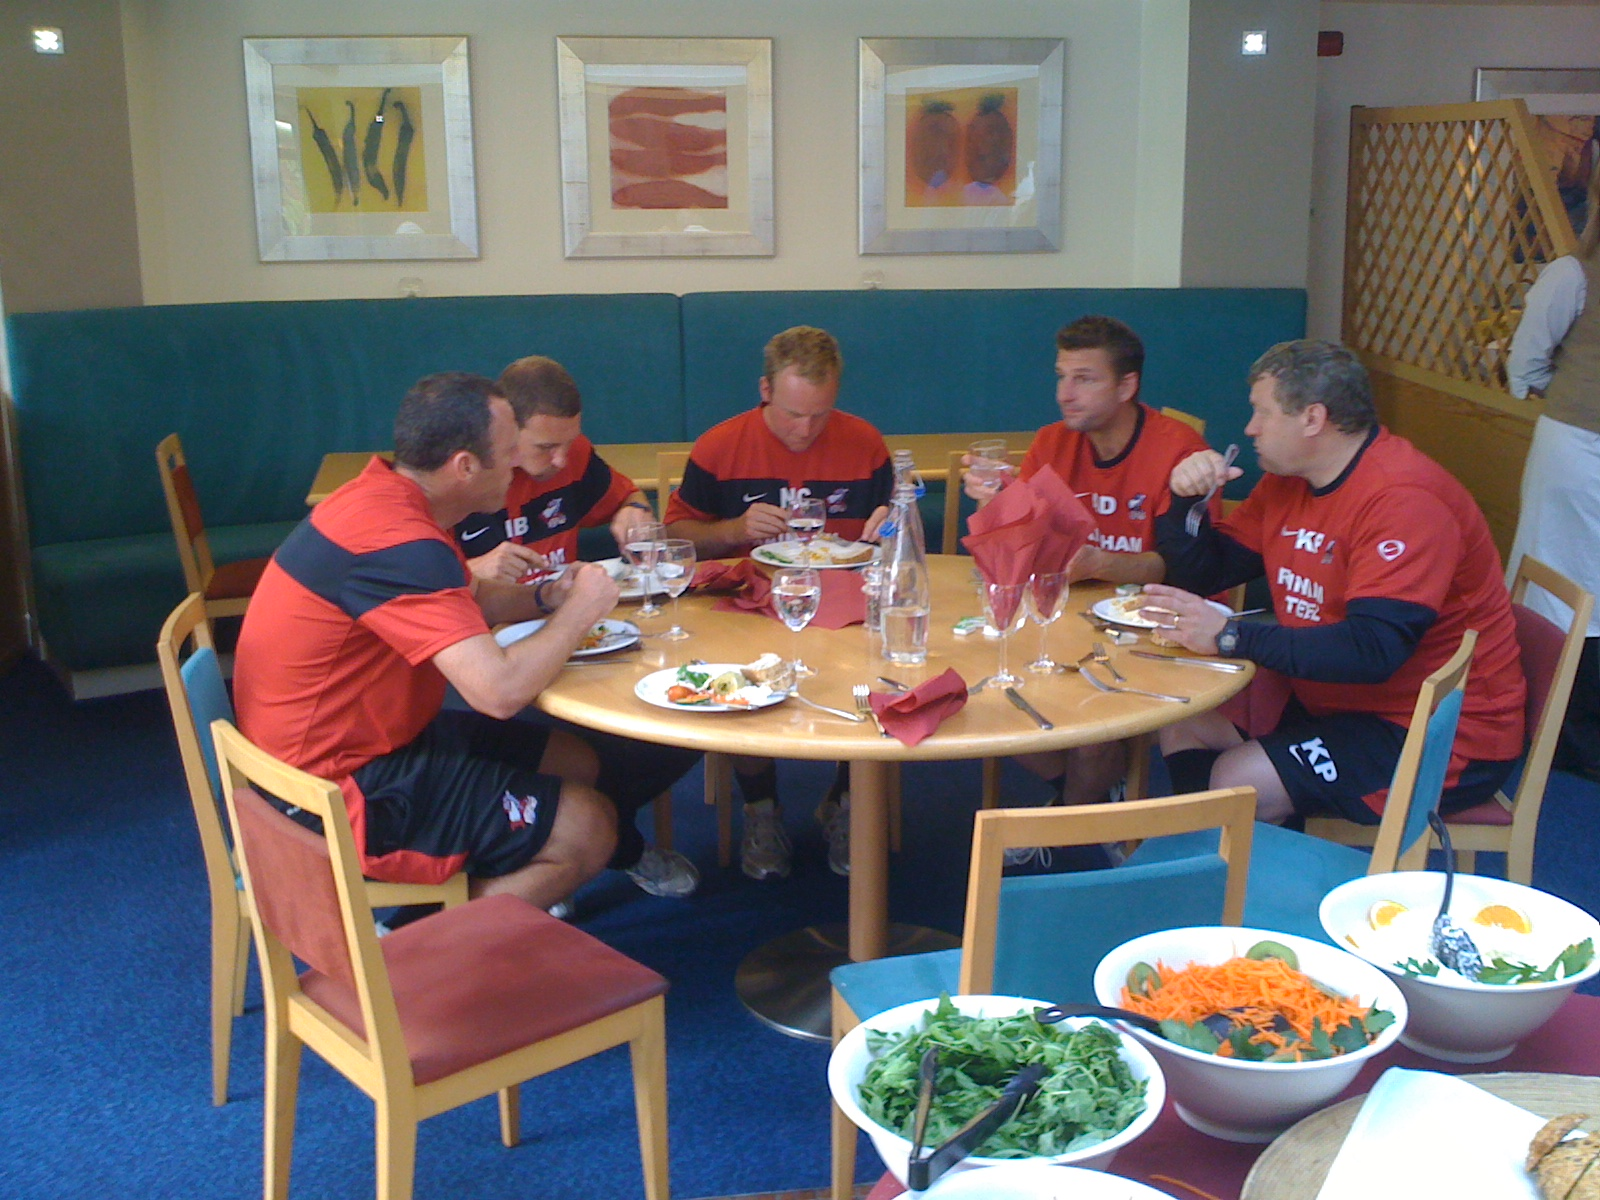 Collaboration - Assistant Manager Andy Crosby, Coach Ian Baraclough, Kitman Nick Crawford, Physiotherapsit Alex Dalton and Goalkeeping Coach Kevin Pressman. Fantastic togetherness and spirit. Eating together during Scunthorpe United pre-season training camp for the Championship Season, July 2010, Champney Springs, Leicestershire.